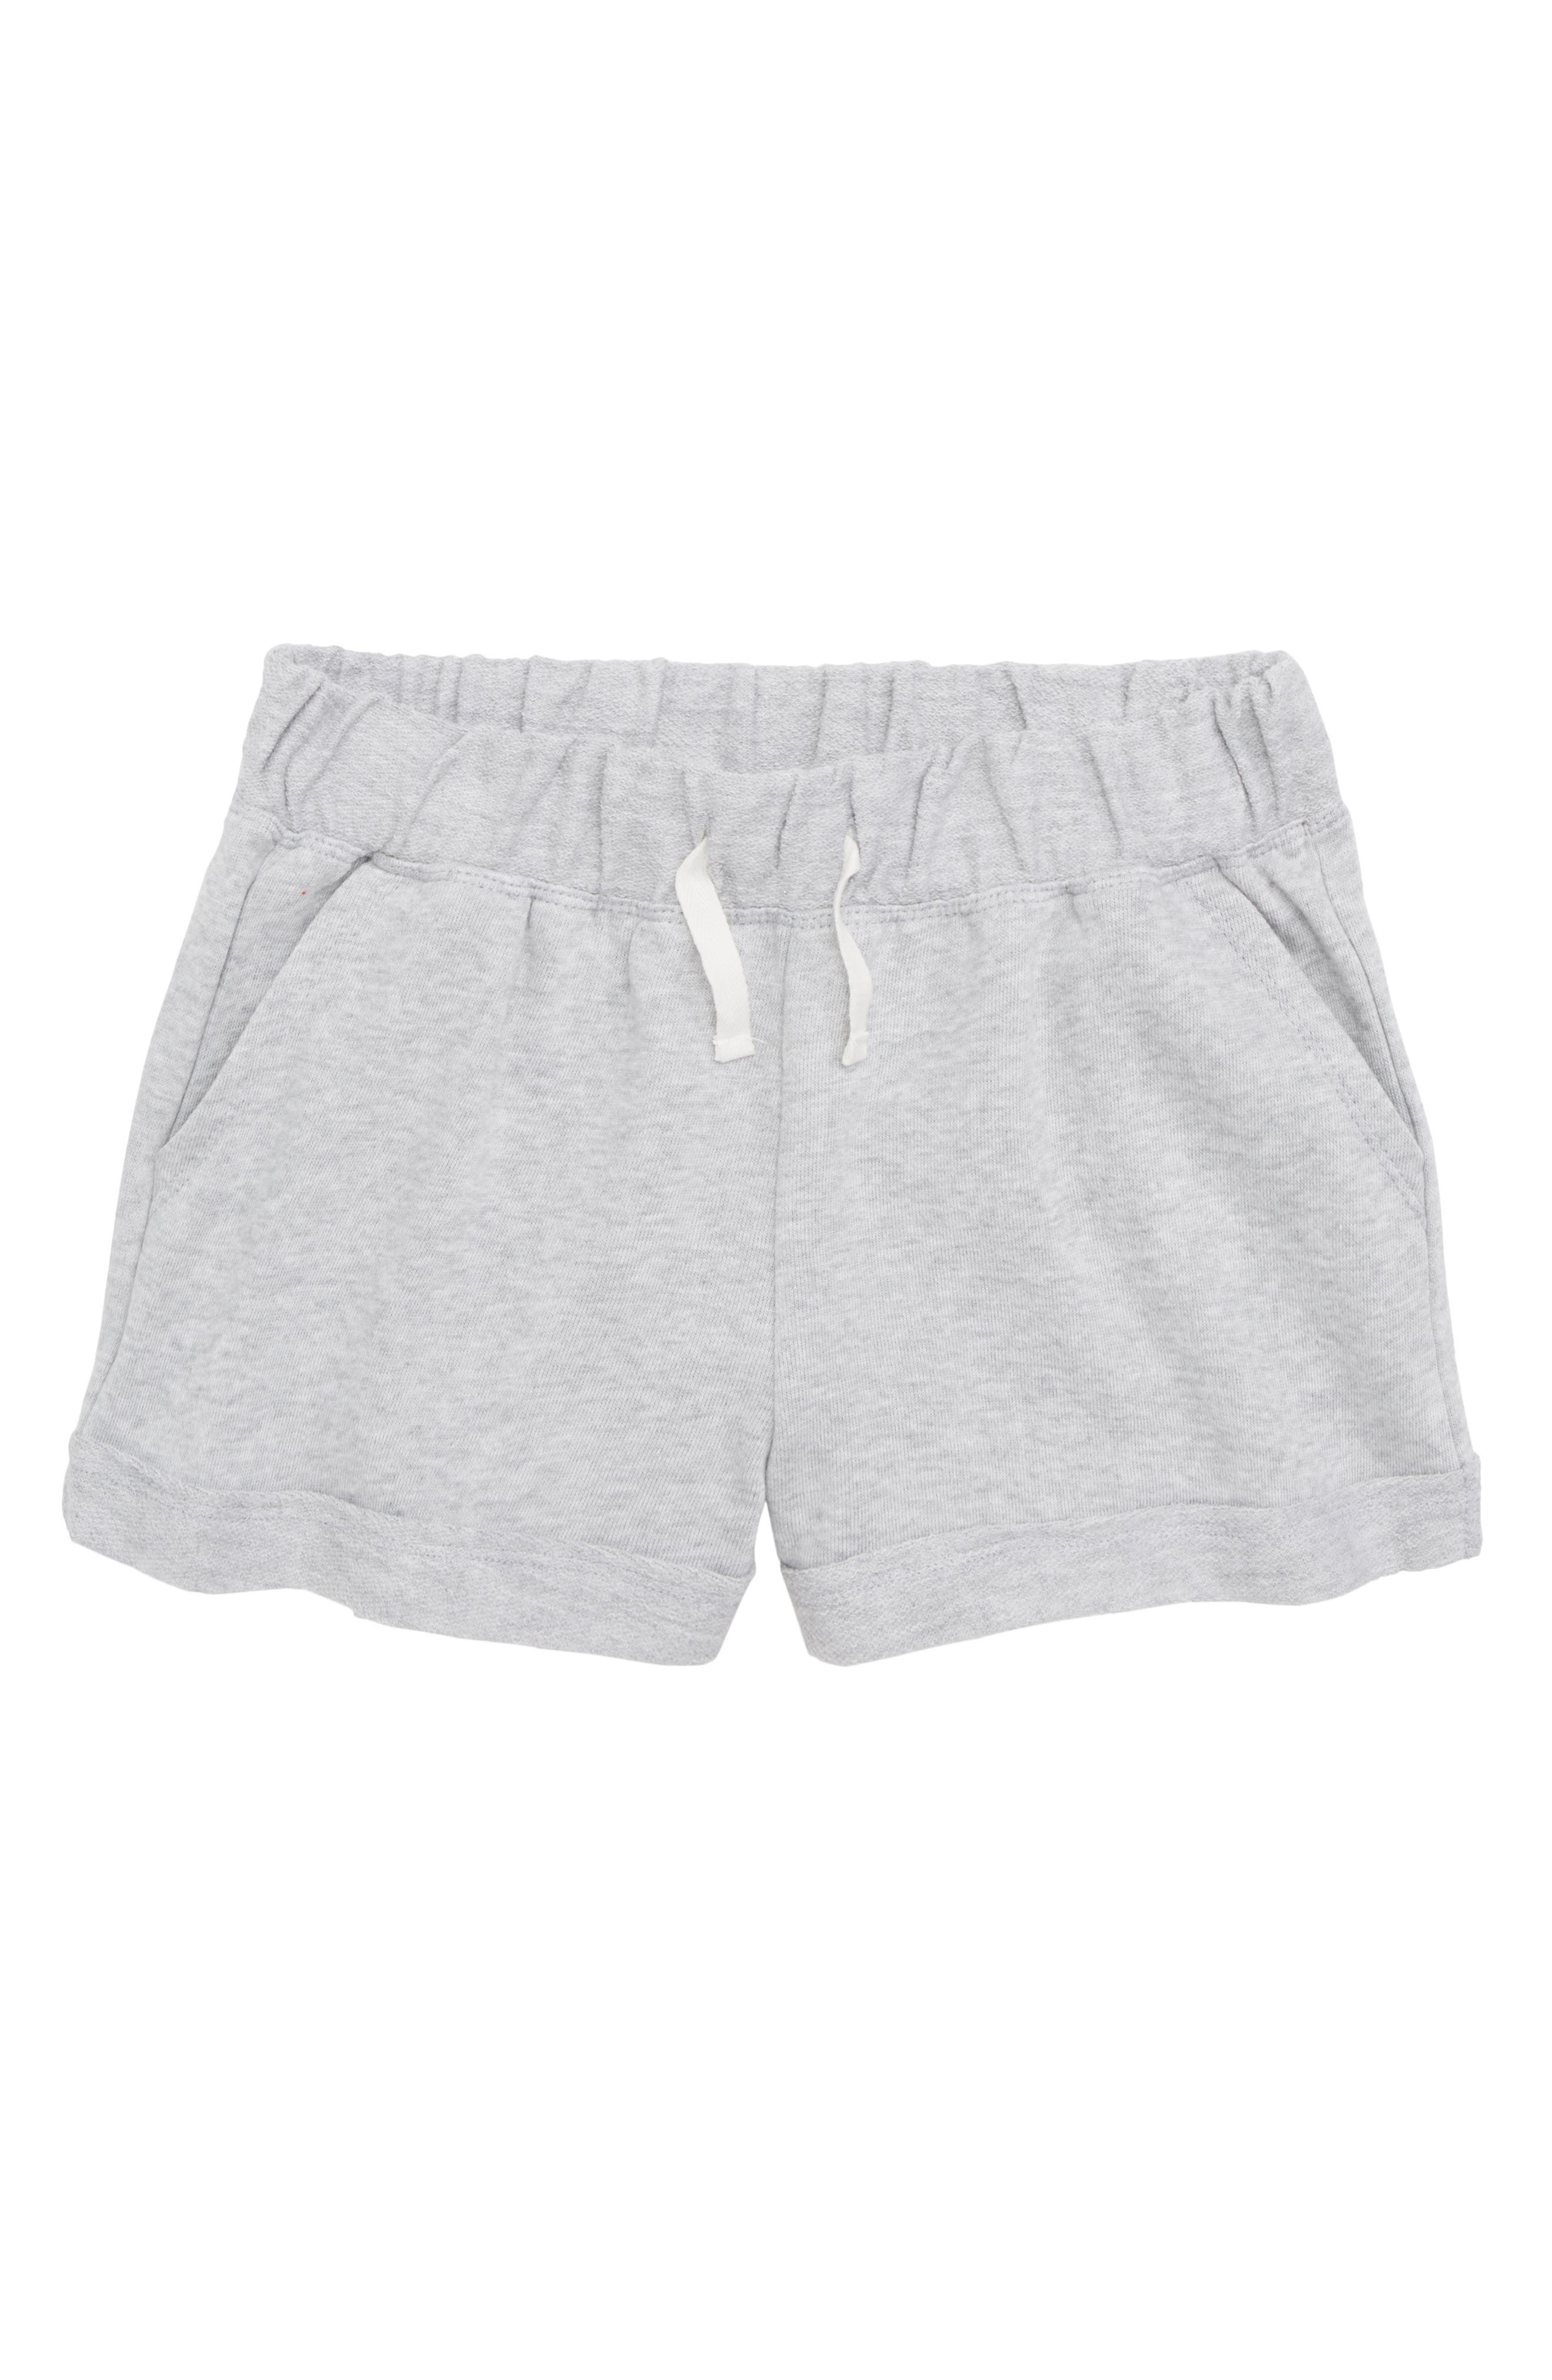 Cuff French Terry Shorts,                             Main thumbnail 1, color,                             052